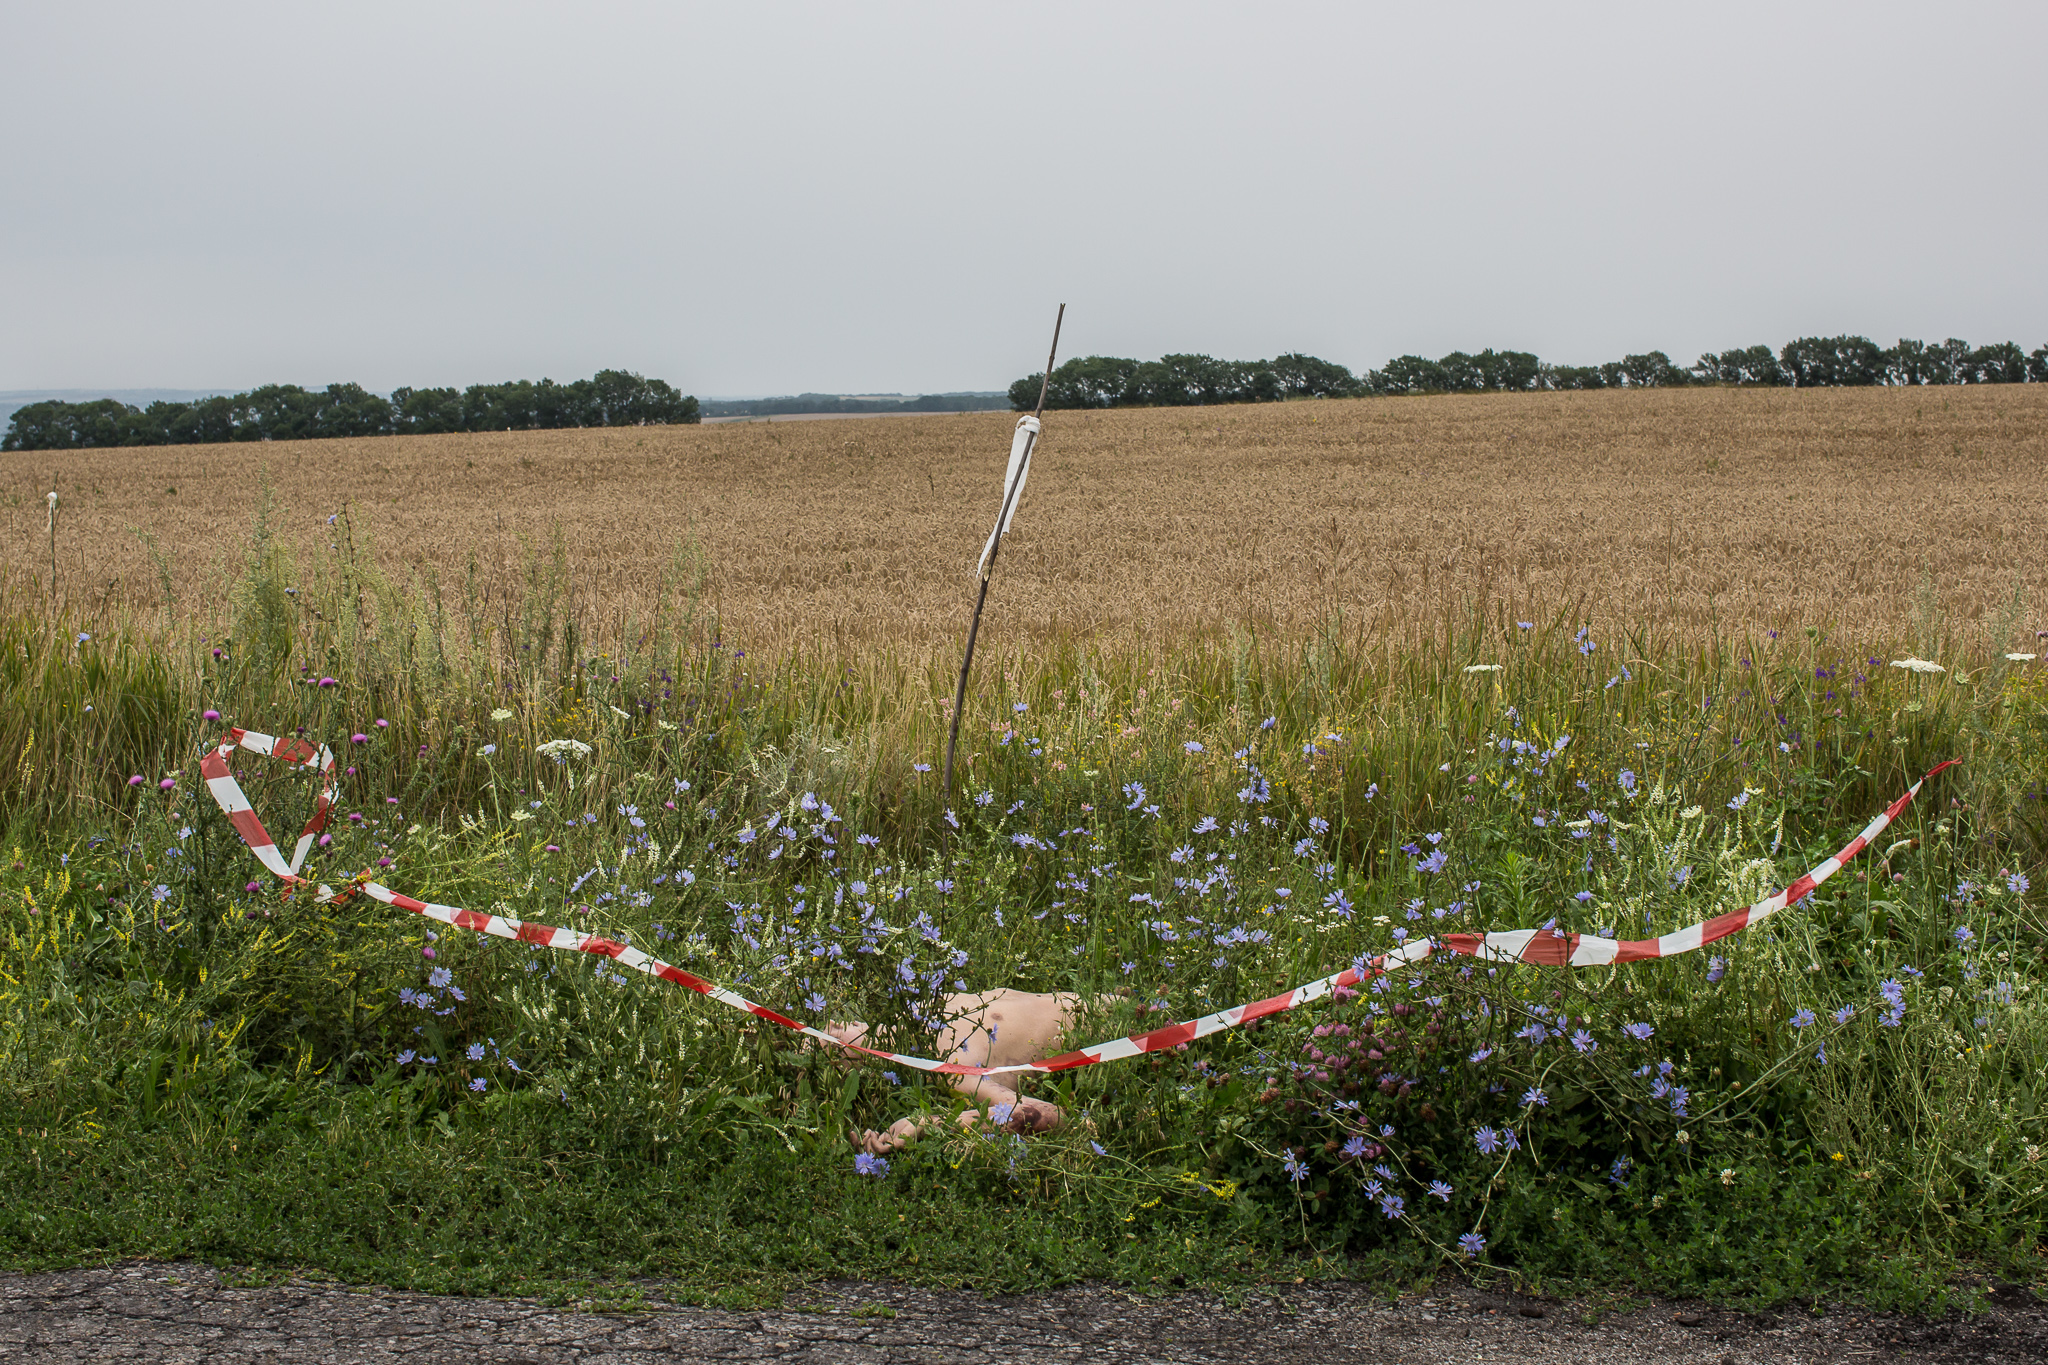 The body of a passenger on Malaysia Airlines flight MH17 lies at the edge of a road on July 18, 2014 in Grabovo, Ukraine. The flight, traveling from Amsterdam to Kuala Lumpur, crashed on the Ukraine/Russia border near the town of Shaktersk. The Boeing 777 was carrying 298 people.